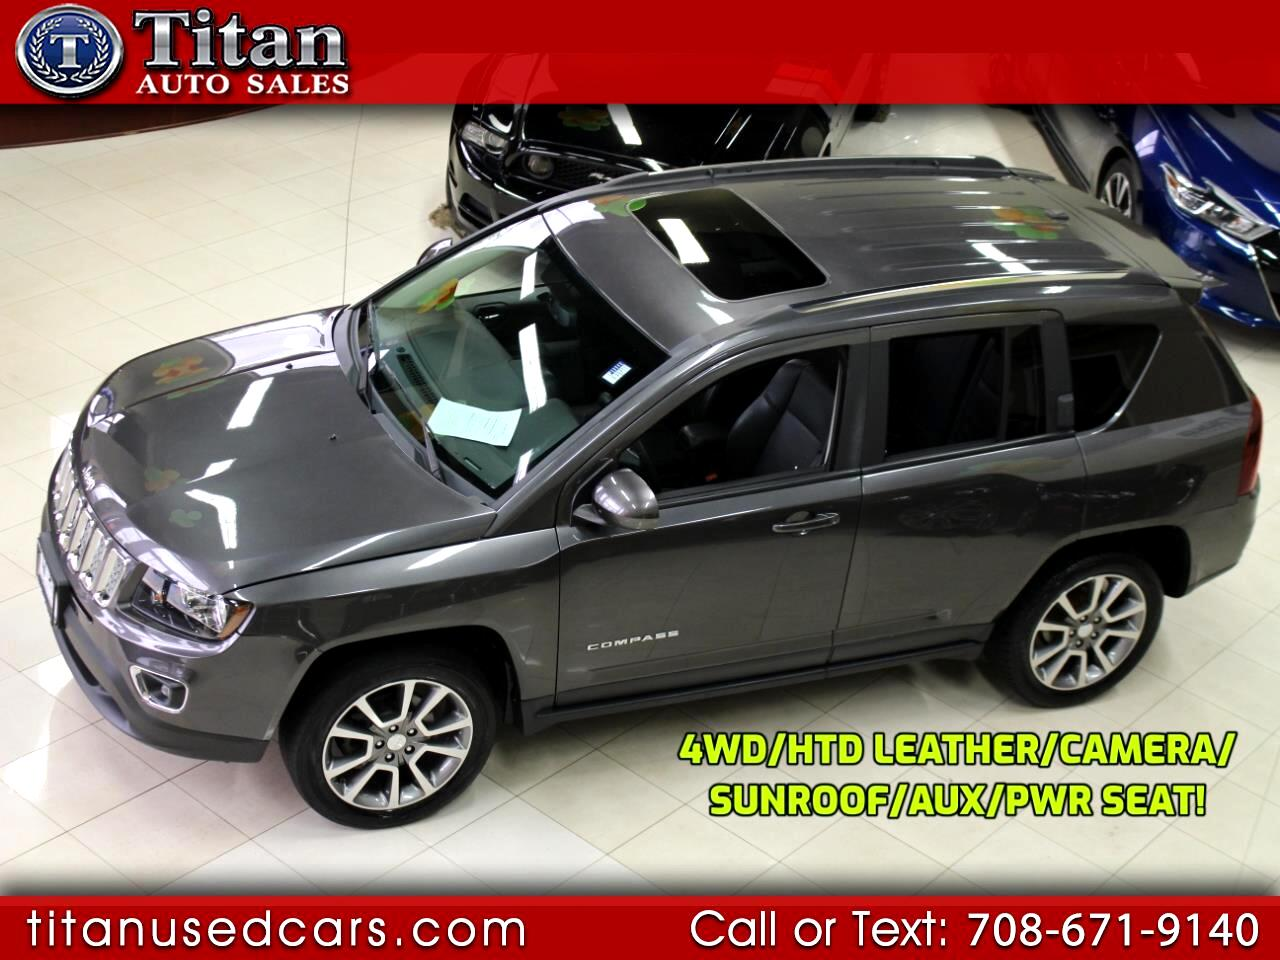 2016 Jeep Compass 4WD High Altitude Edition